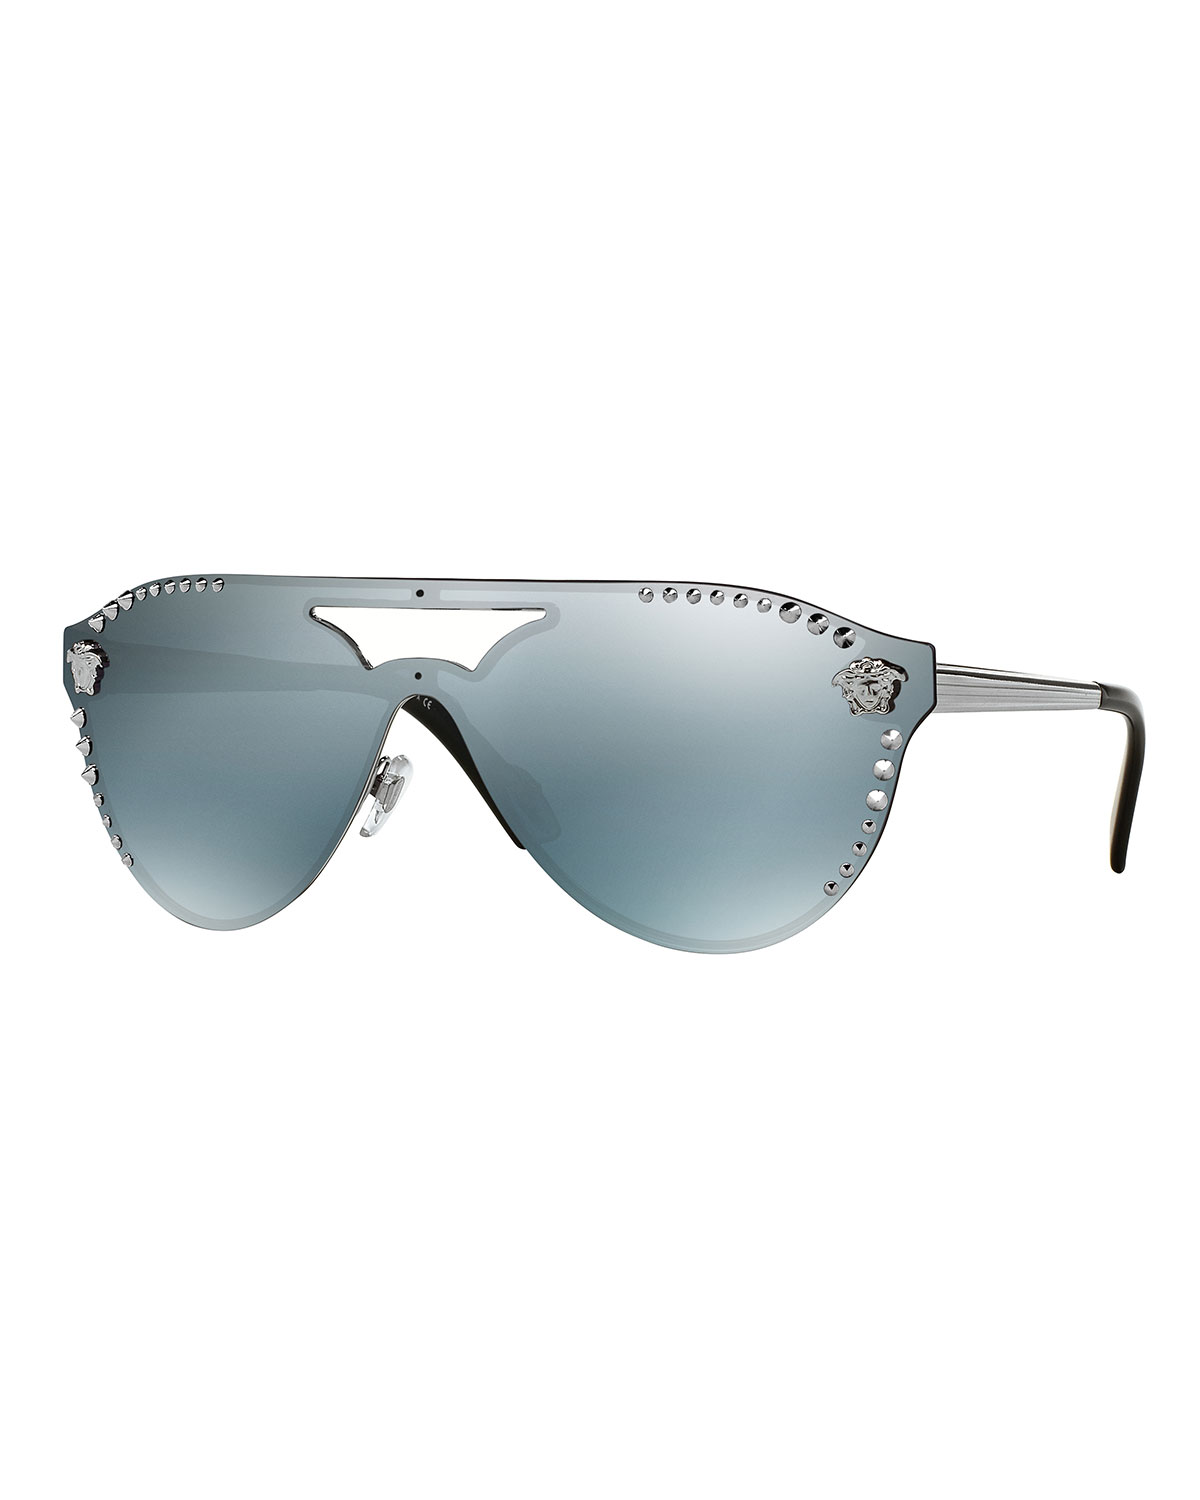 51d3808b81 Versace Men s Mirrored Metal-Studded Shield Sunglasses